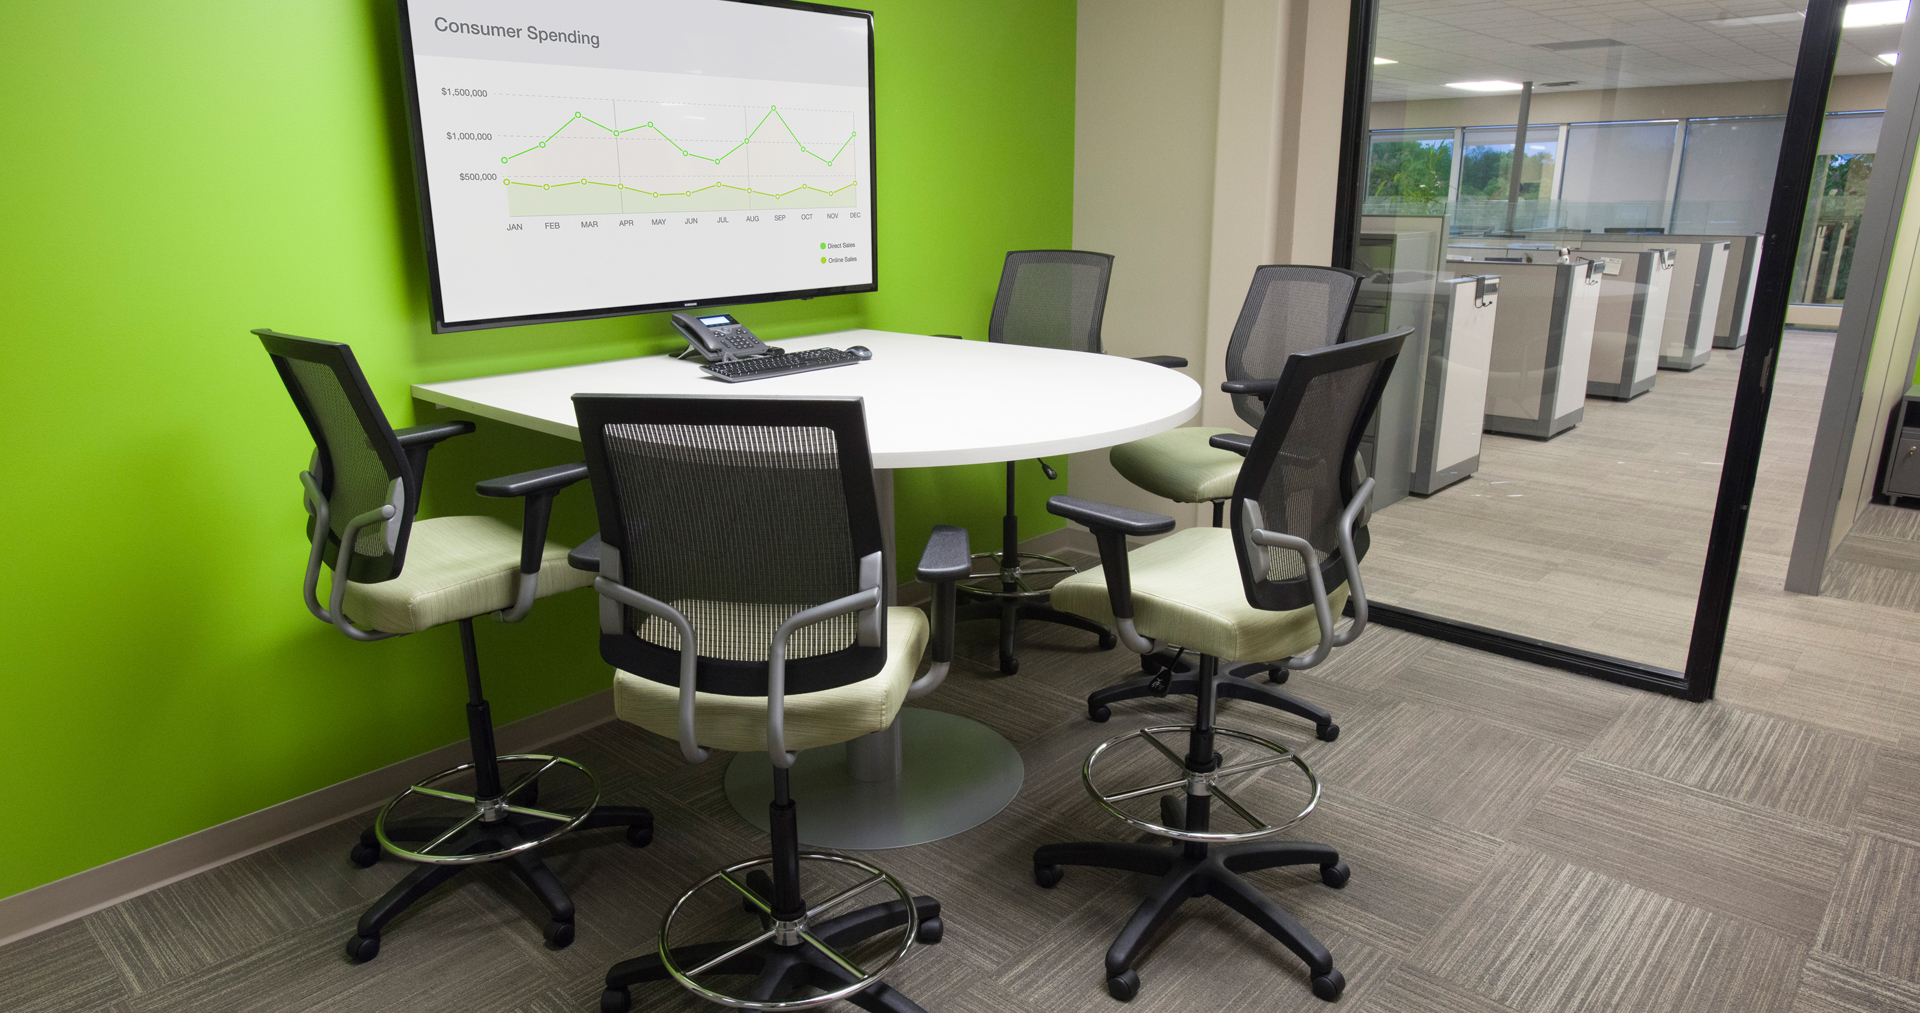 NBS.LCG.2017.081_Learning_Care_Green_Room_Hightop_1920x